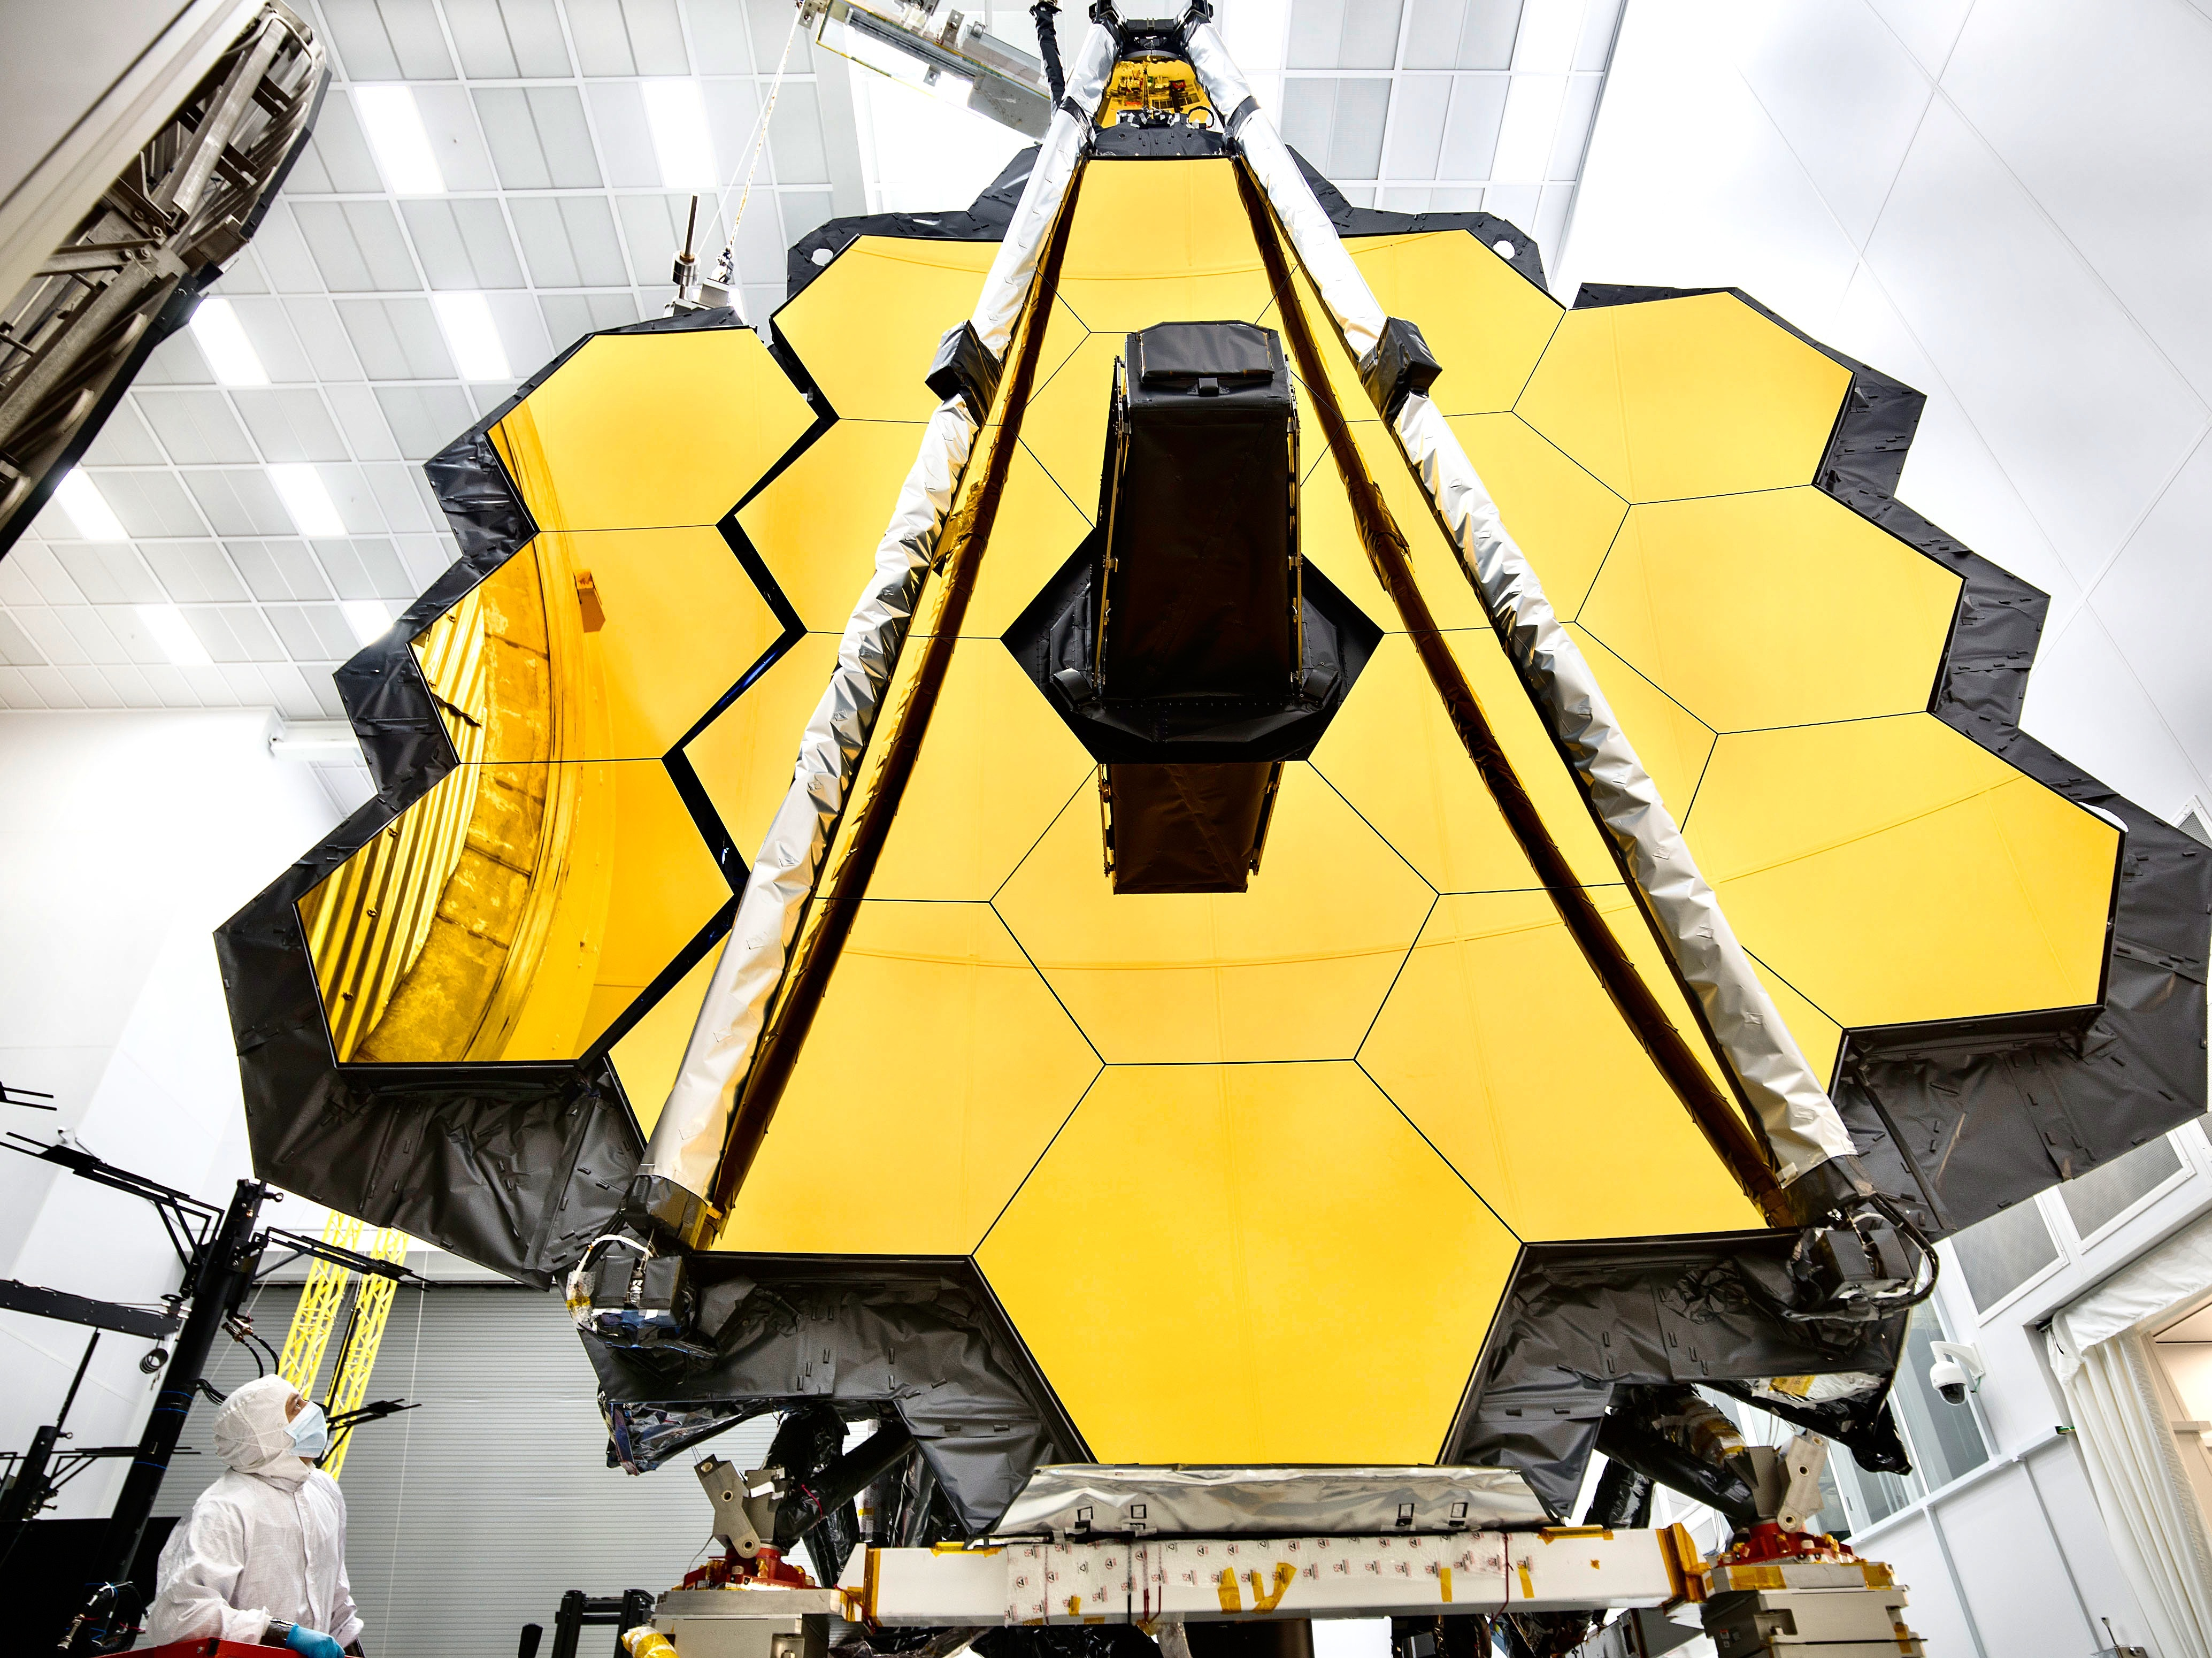 The JWST is currently being readied for launch